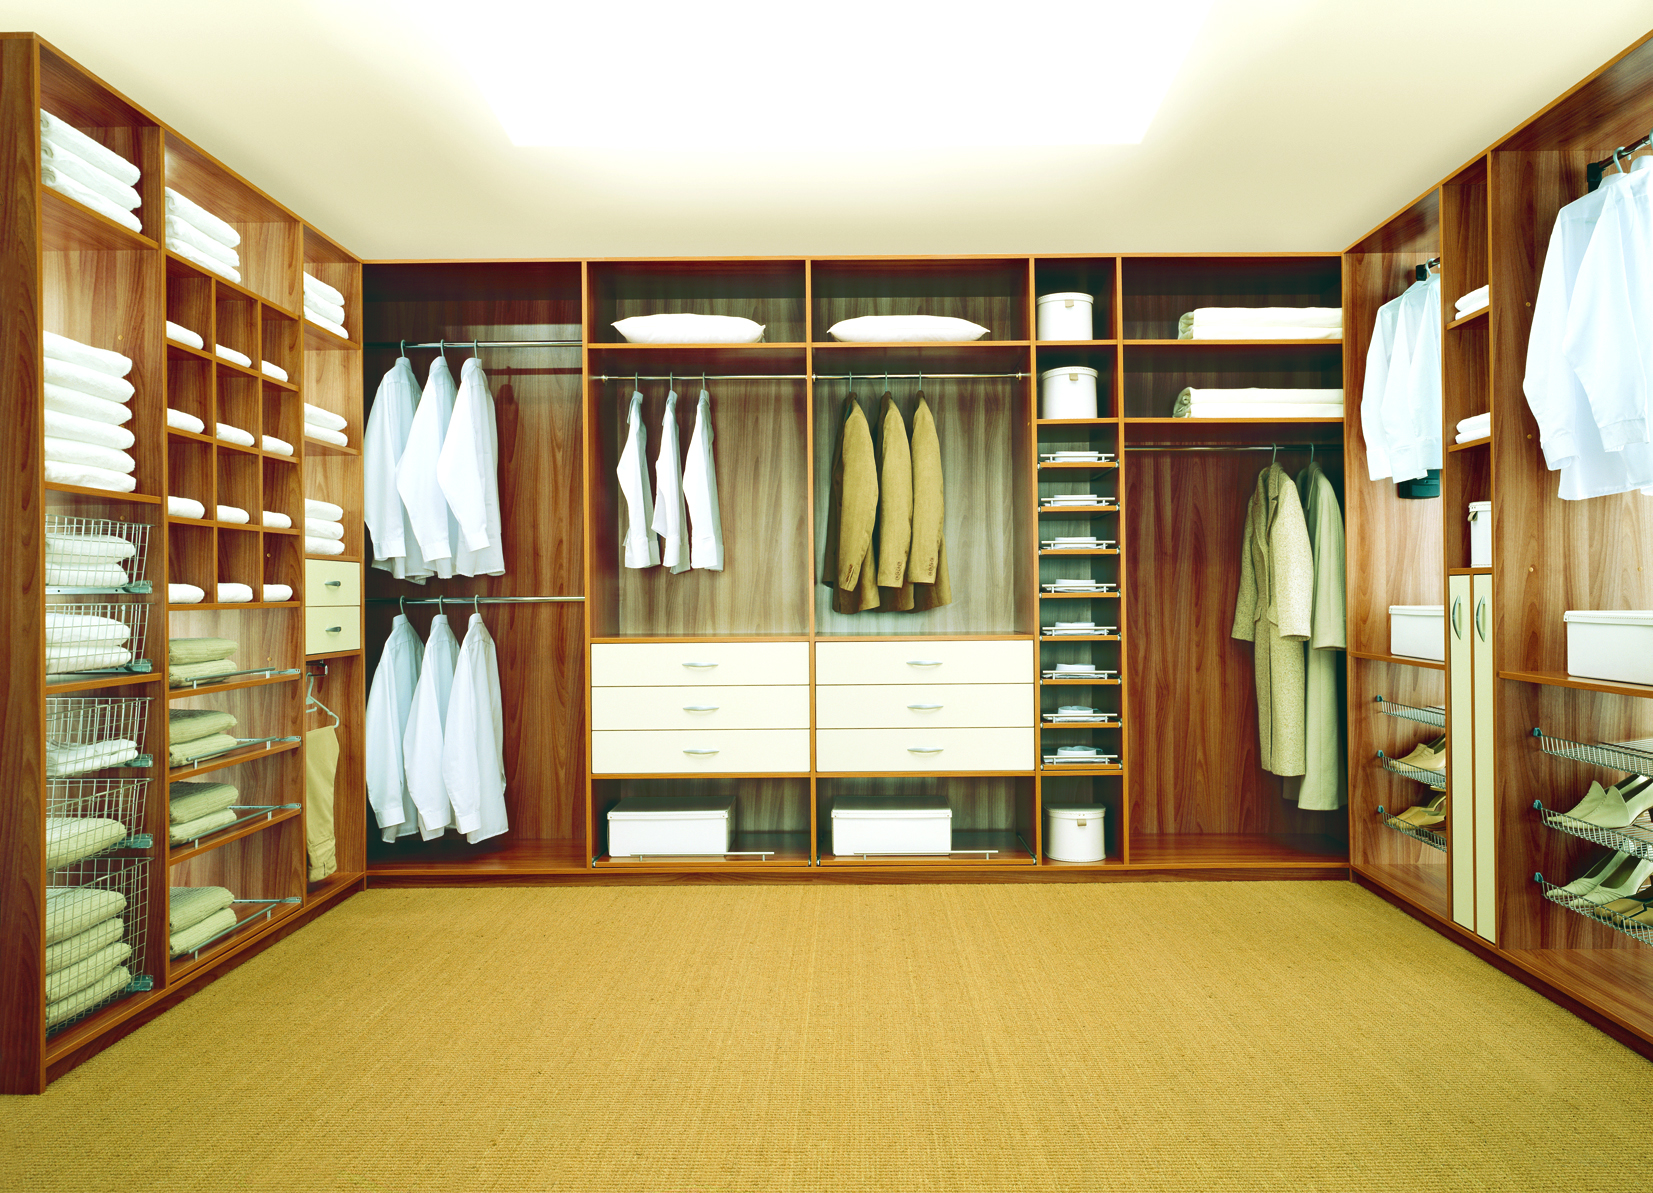 Bedroom WalkIn Closet Designs